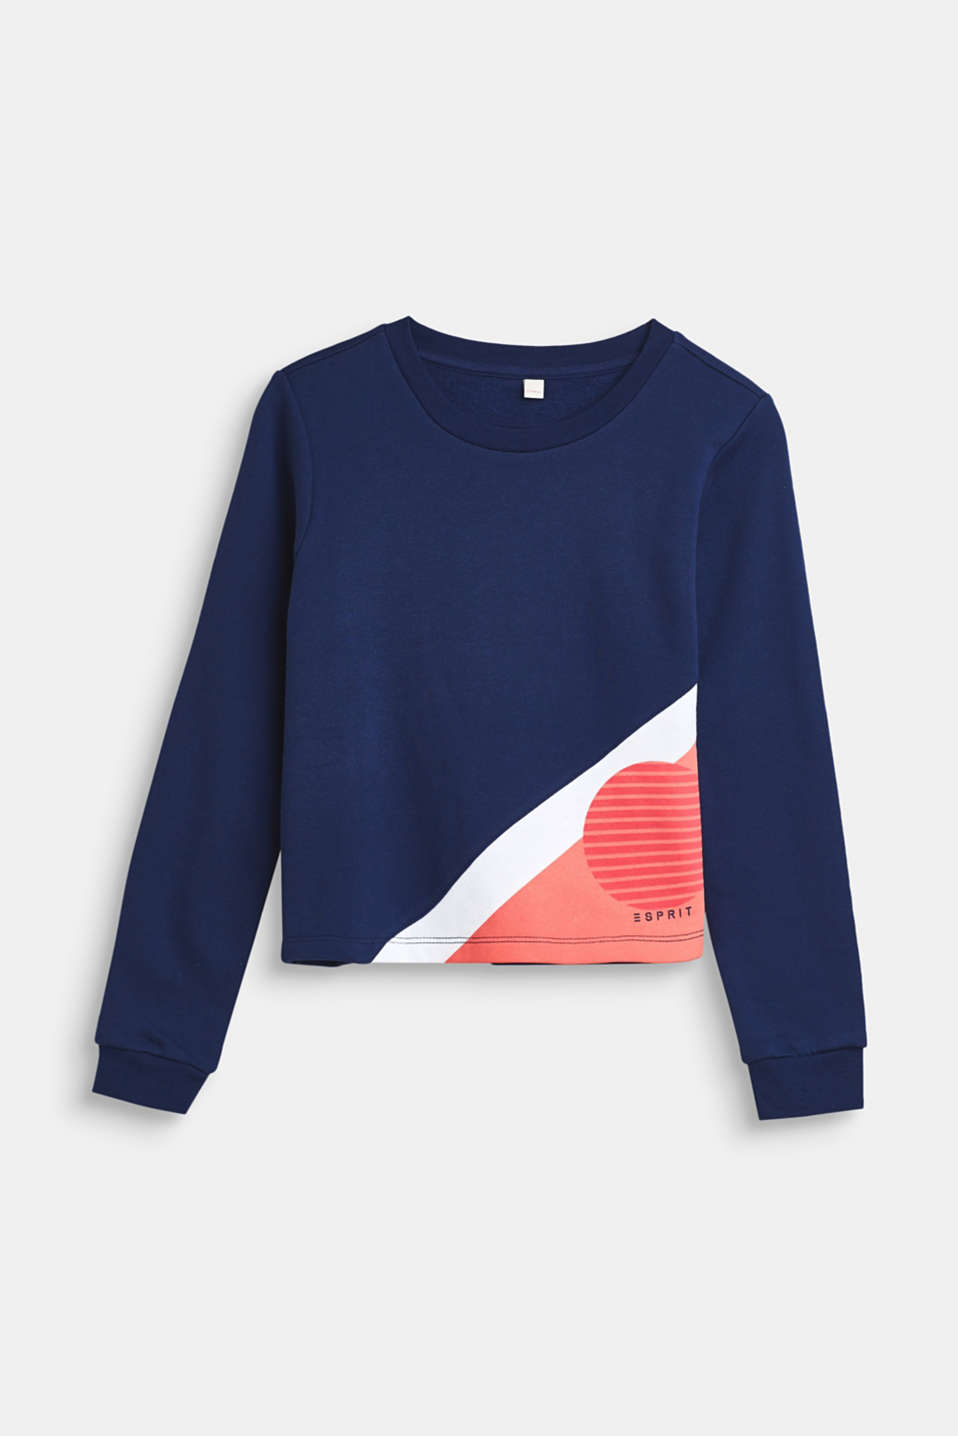 Esprit - Sweatshirt met colour block design, 100% katoen